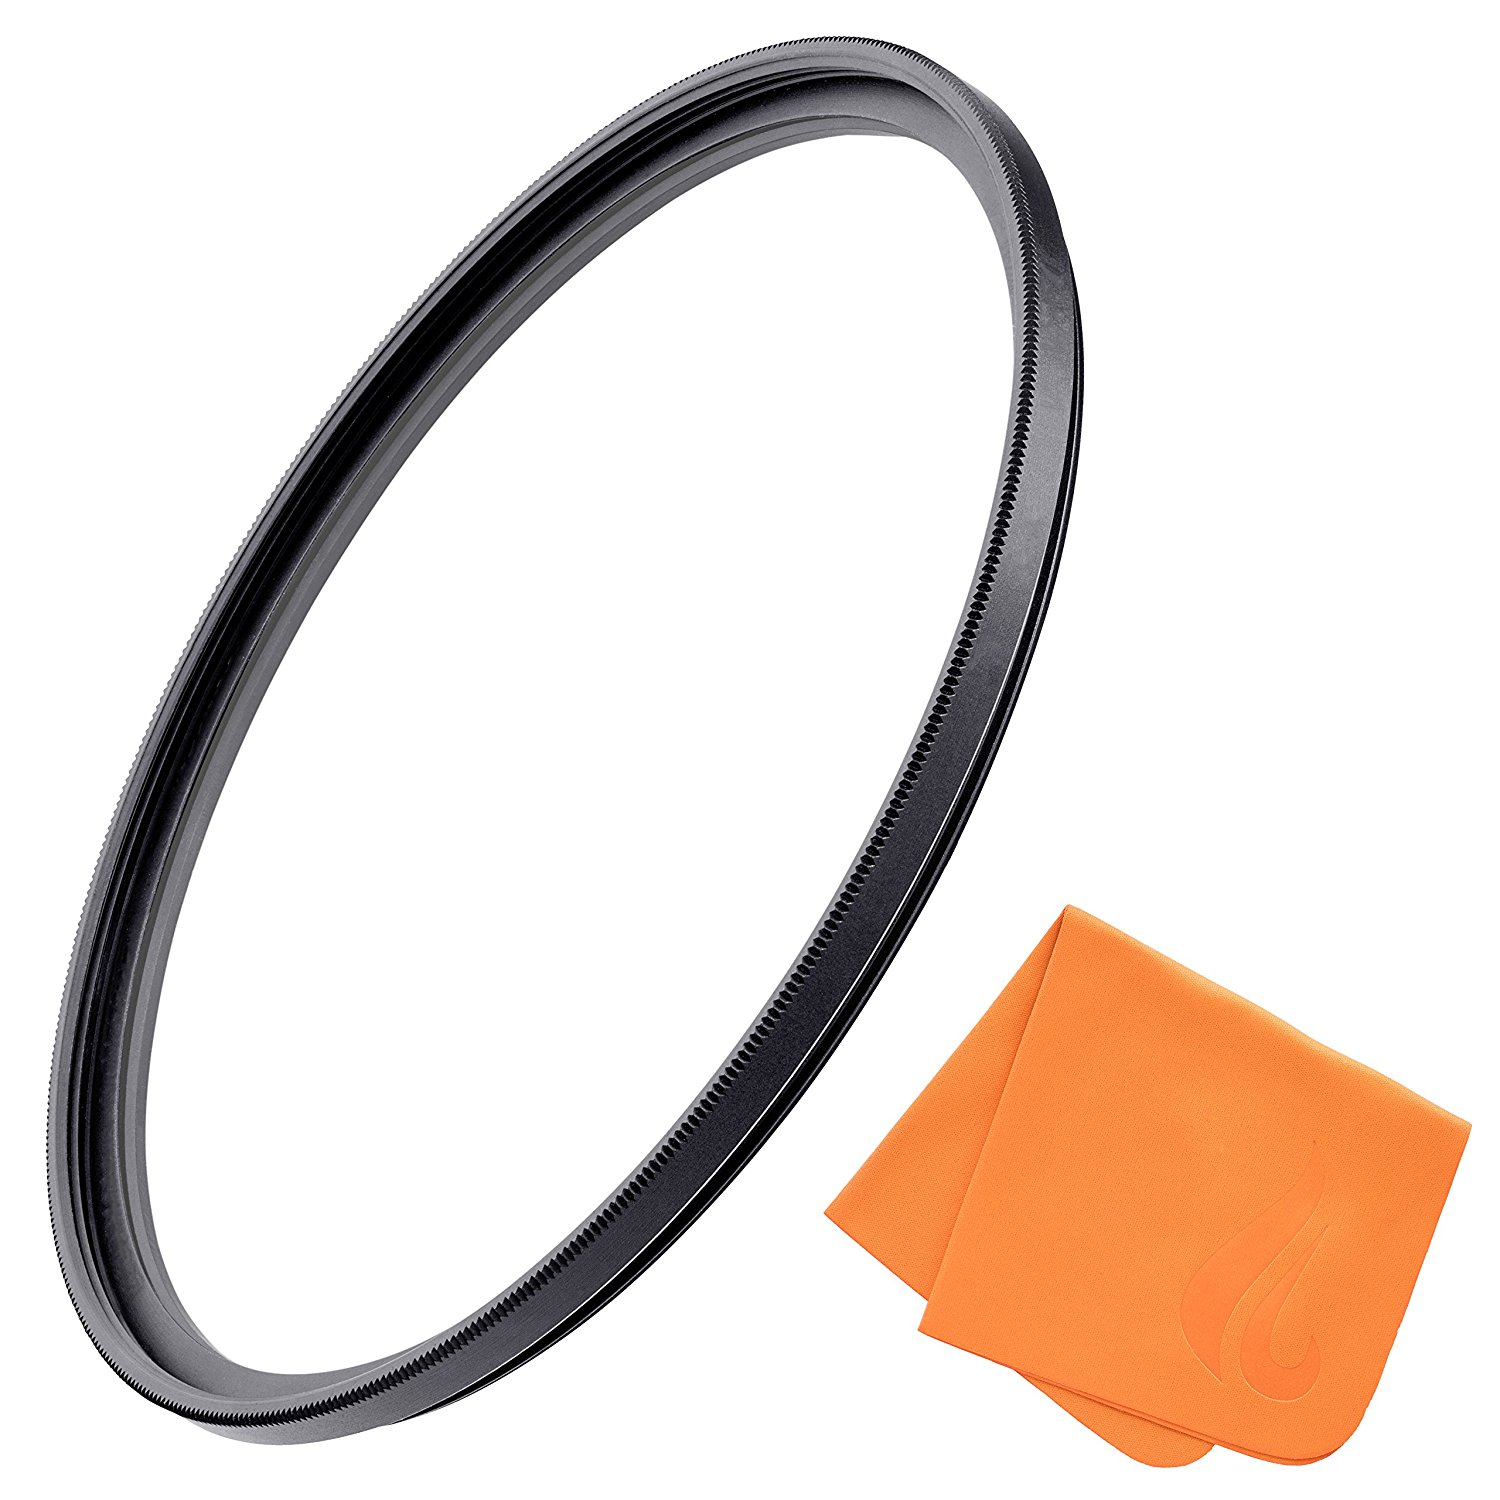 49mm UV Filter for Camera Lenses, Ultraviolet Protection Lens Filter for Doing Outdoor & Professional Photography, MRC4 Protection, Ultra-Slim, Weather-Sealed by Fire Filters